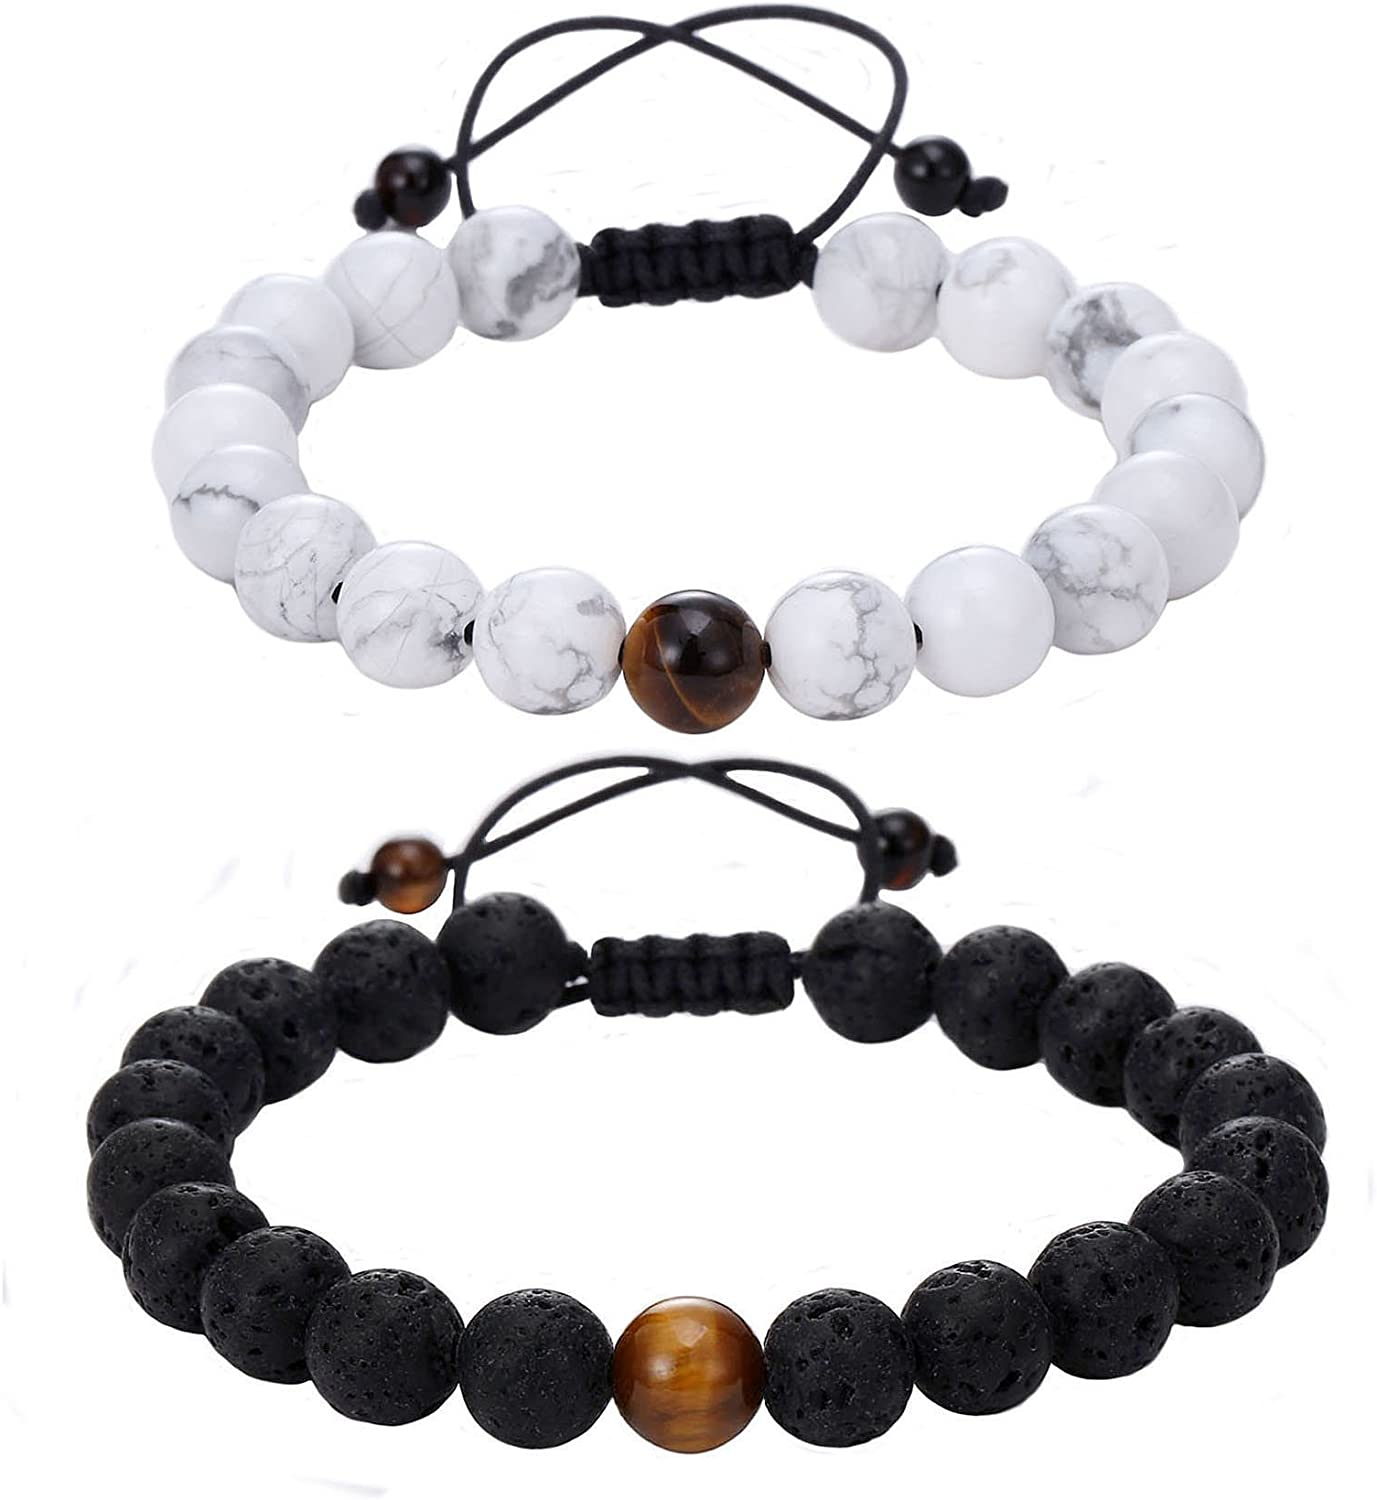 Beaded Necklace Style Medic Alert Button Holder In Semi Precious Stones Of Agate and Jade